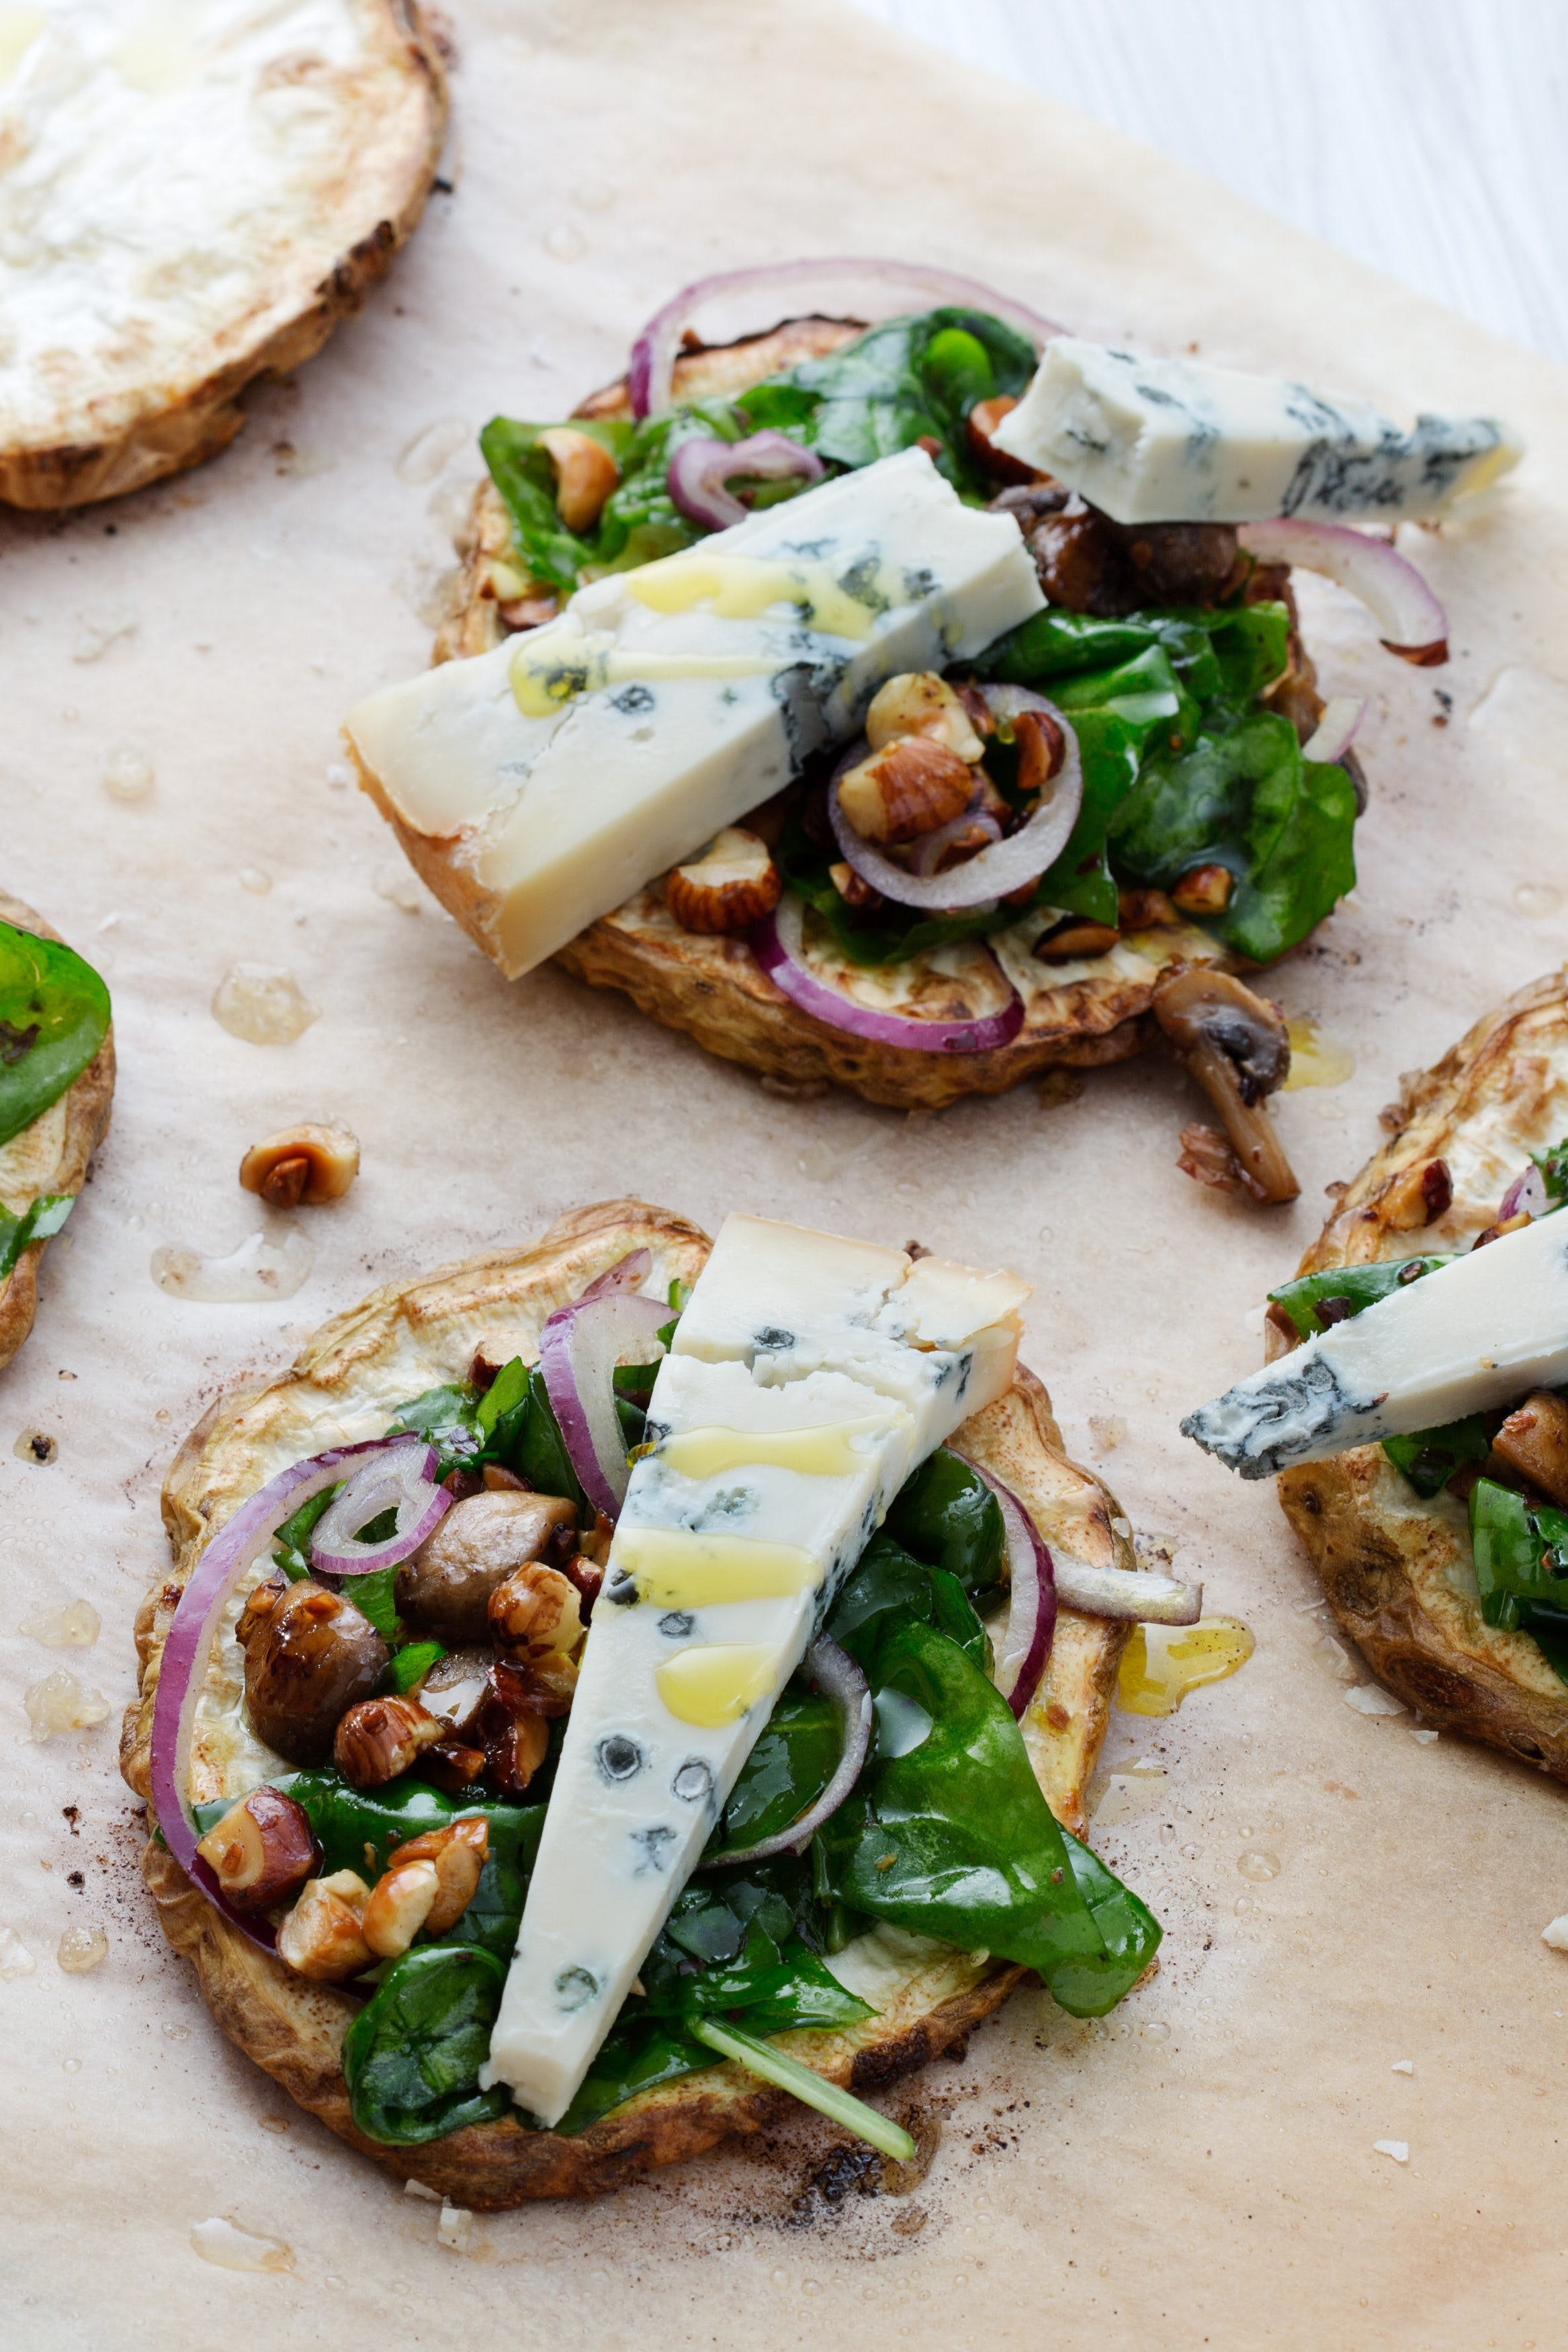 Baked root celery with gorgonzola<br />(Appetizer)